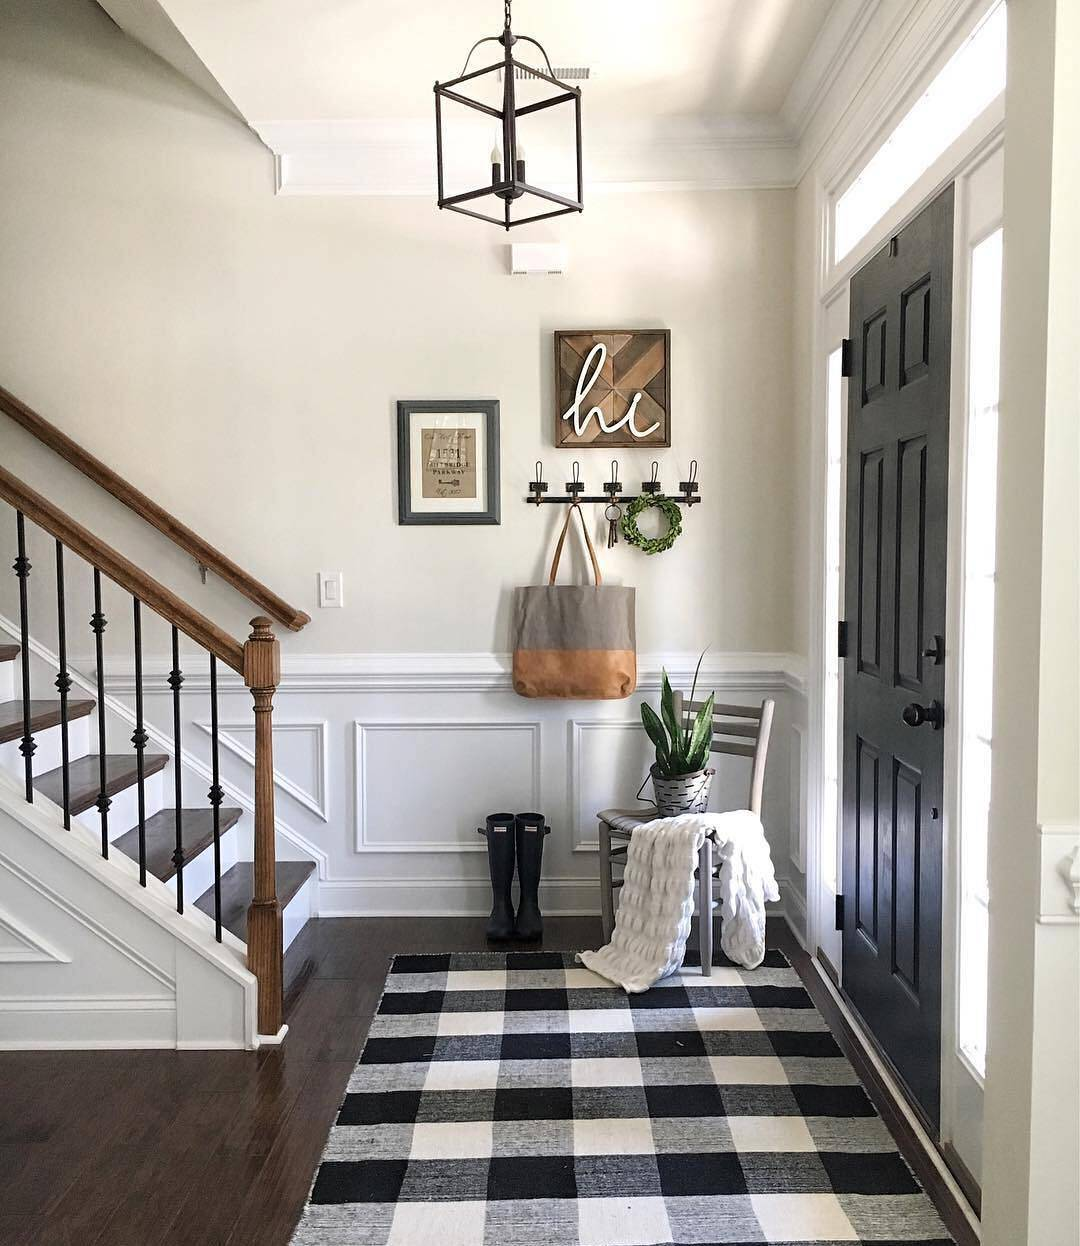 Black and white rug under the stairs